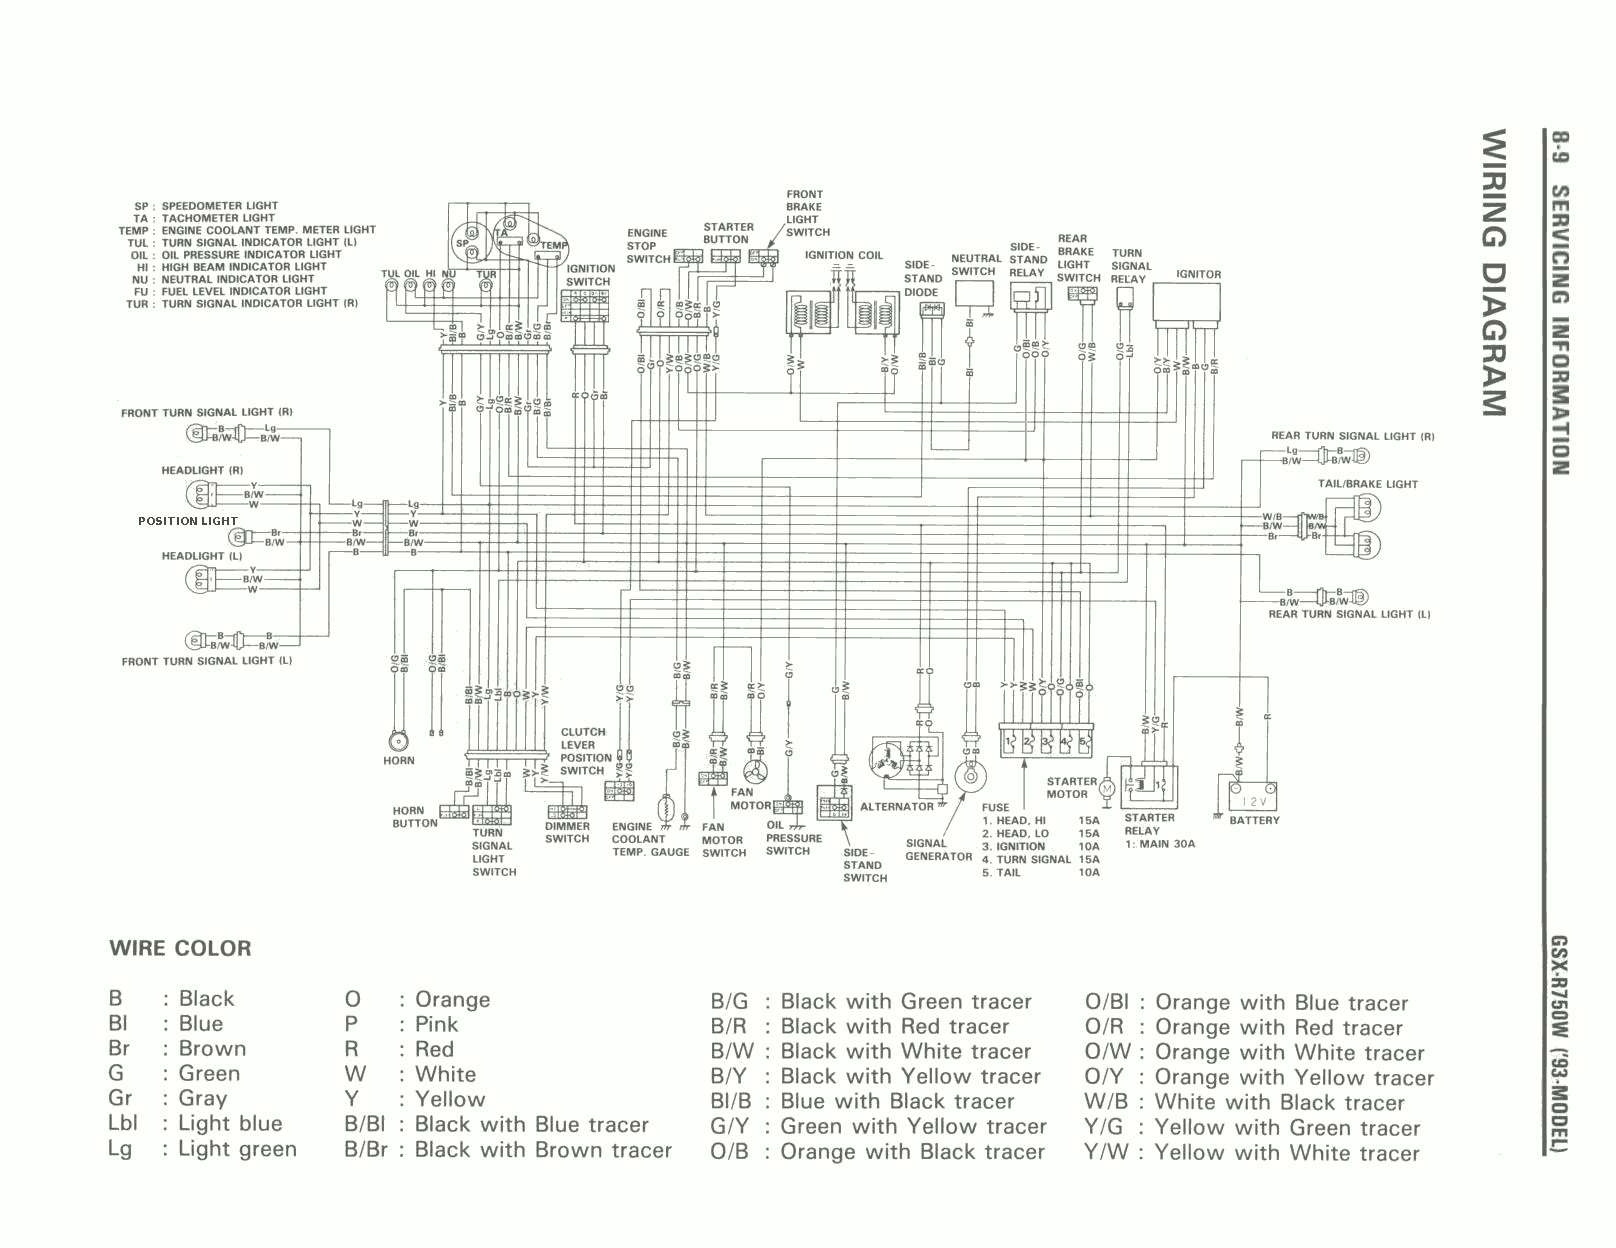 GSXR750 1993 wiring diagram?resize\\\\\\\\\\\\\\\\\\\\\\\\\\\\=665%2C514 2003 ttr 225 wiring diagram ttr 225 piston, yz 80 wiring diagram ttr 225 wiring diagram at bakdesigns.co